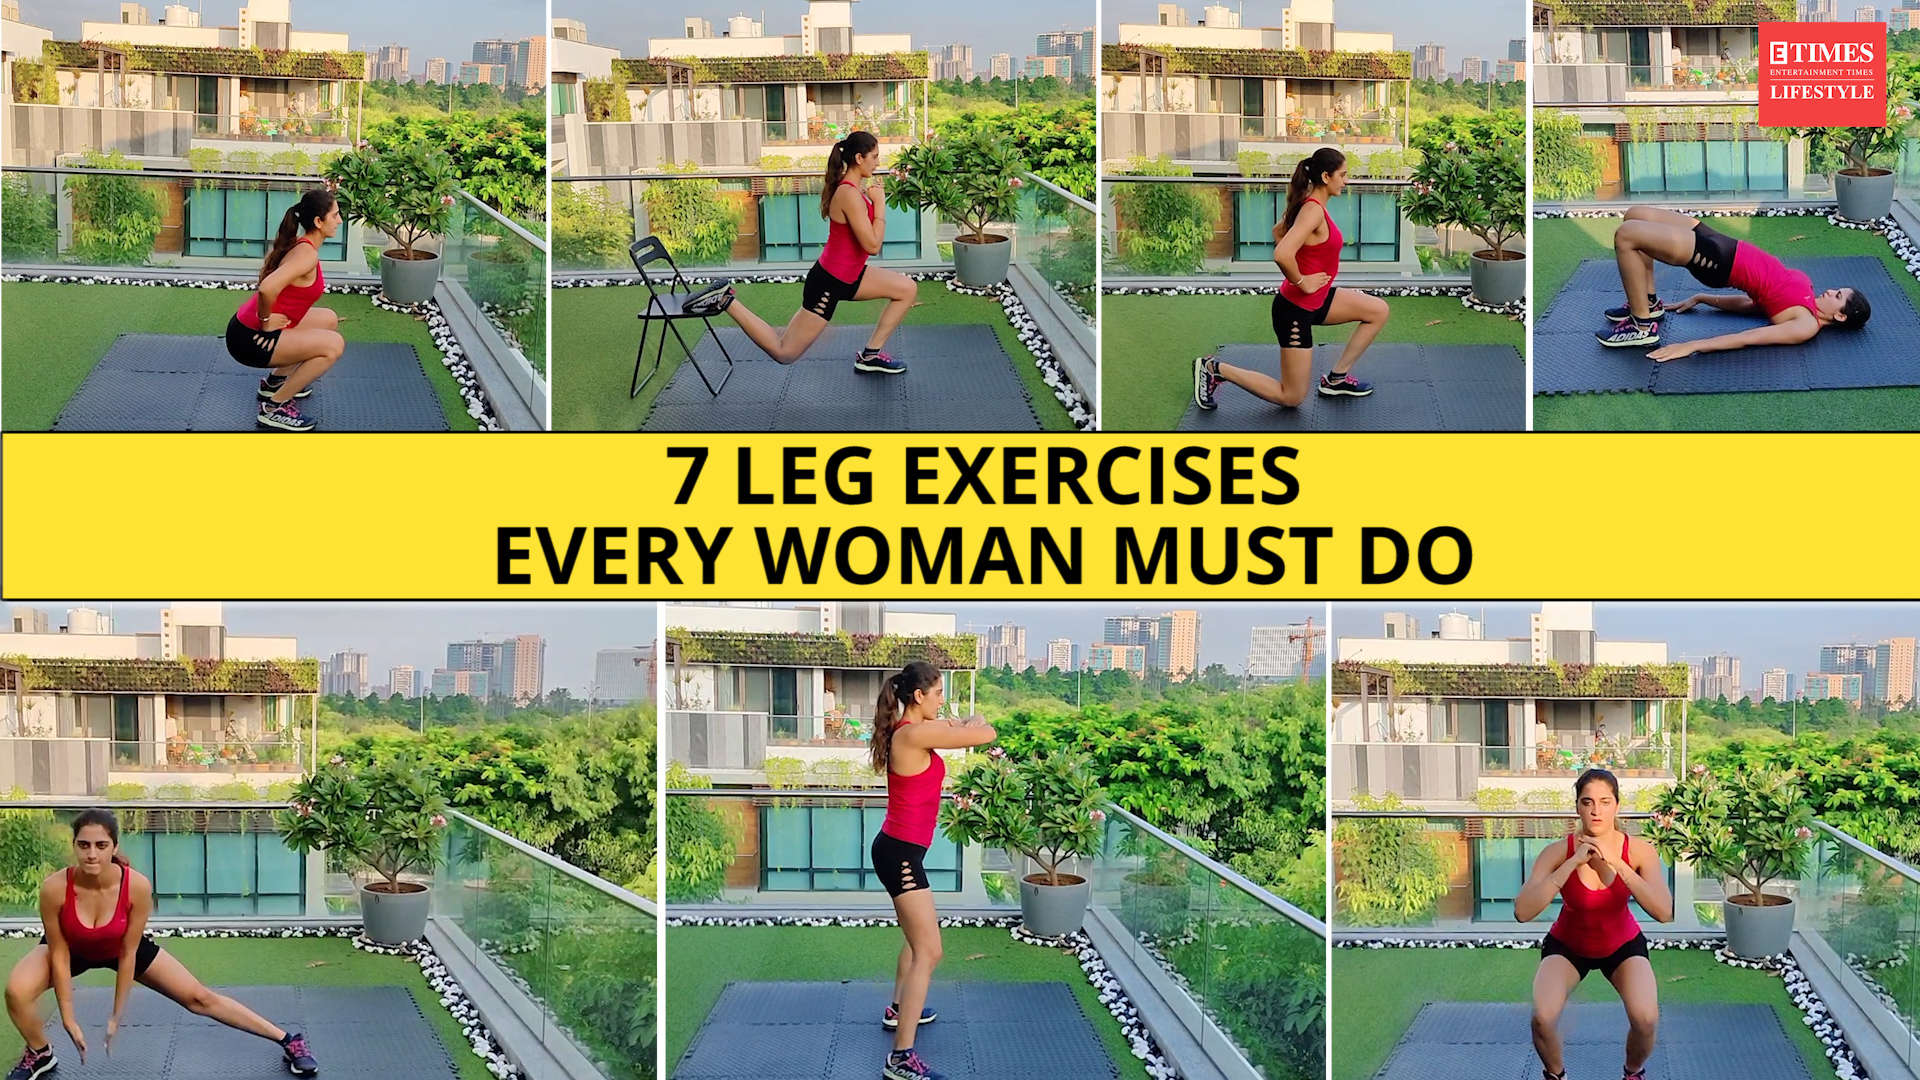 7-leg-exercises-every-woman-must-do